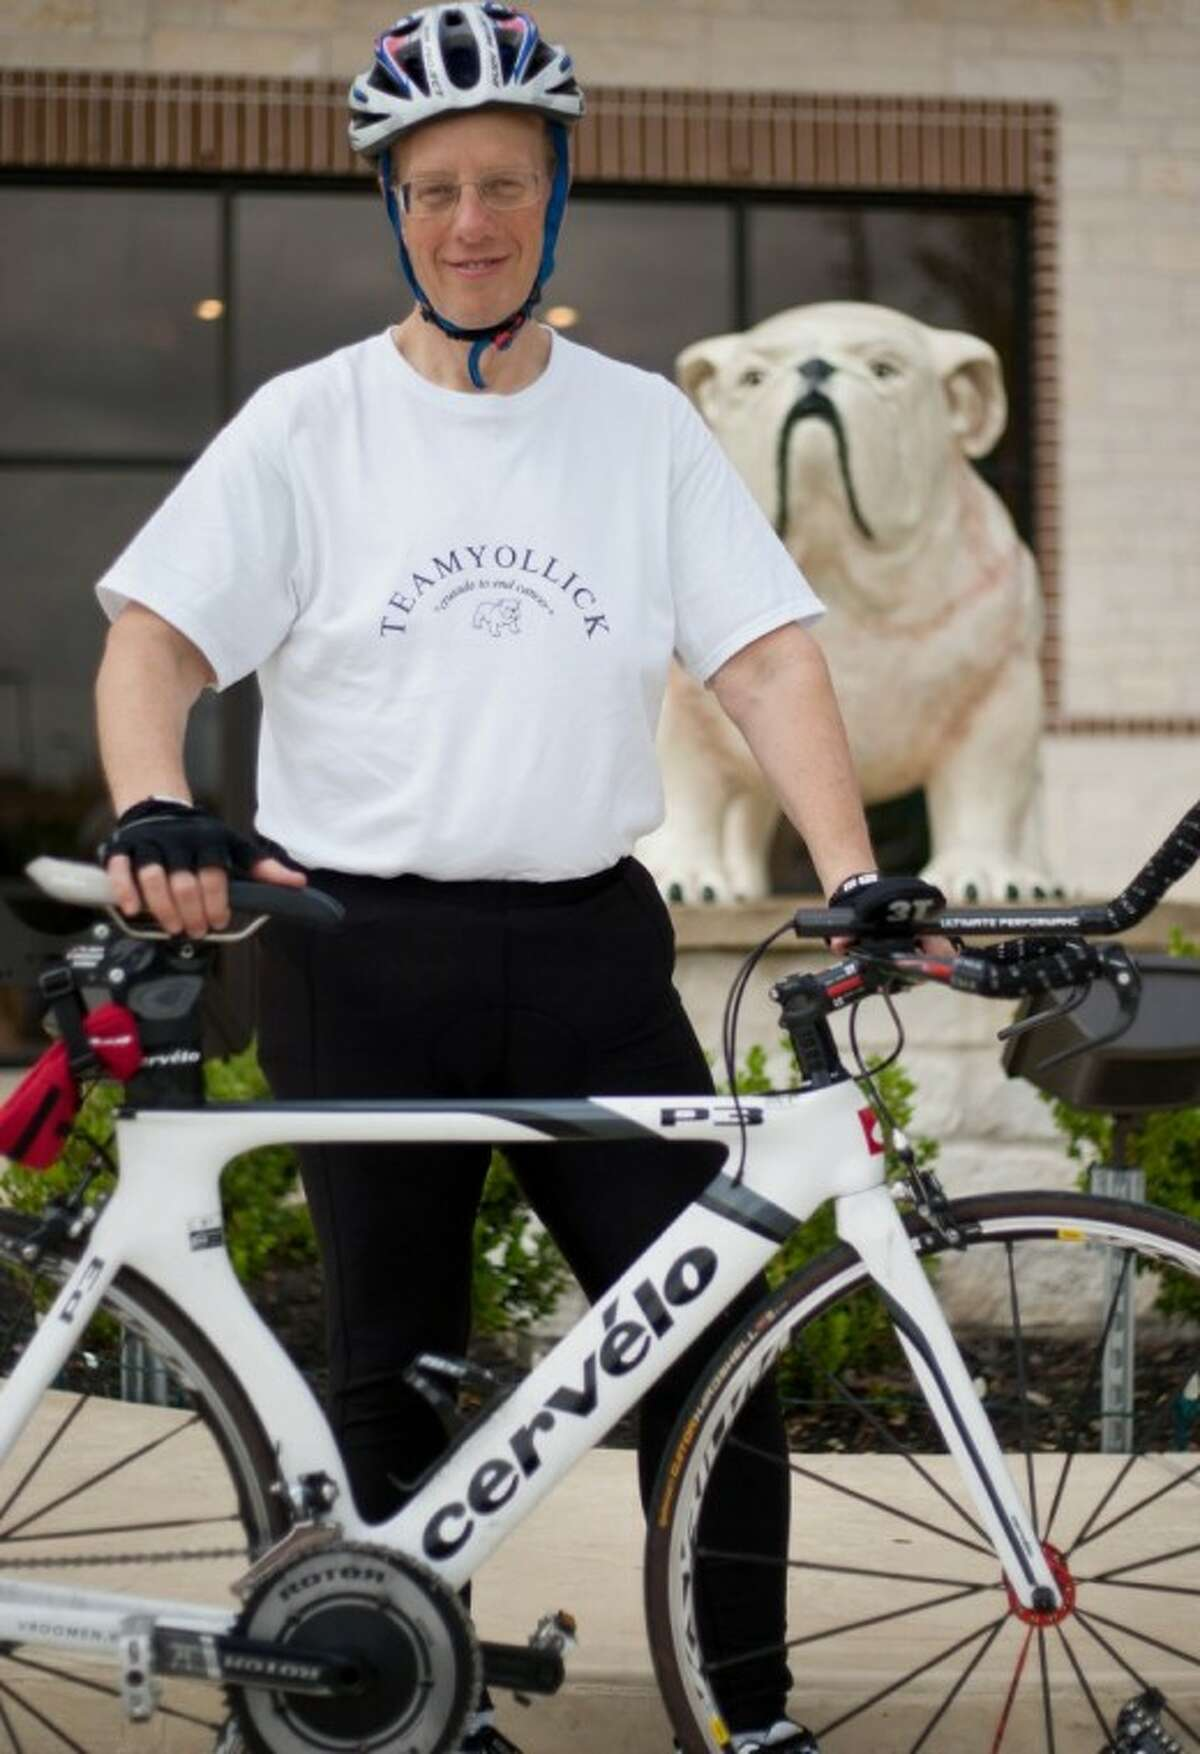 Woodlands attorney Eric Yollick will be competing in the 2012 Texas Ironman triathlon.